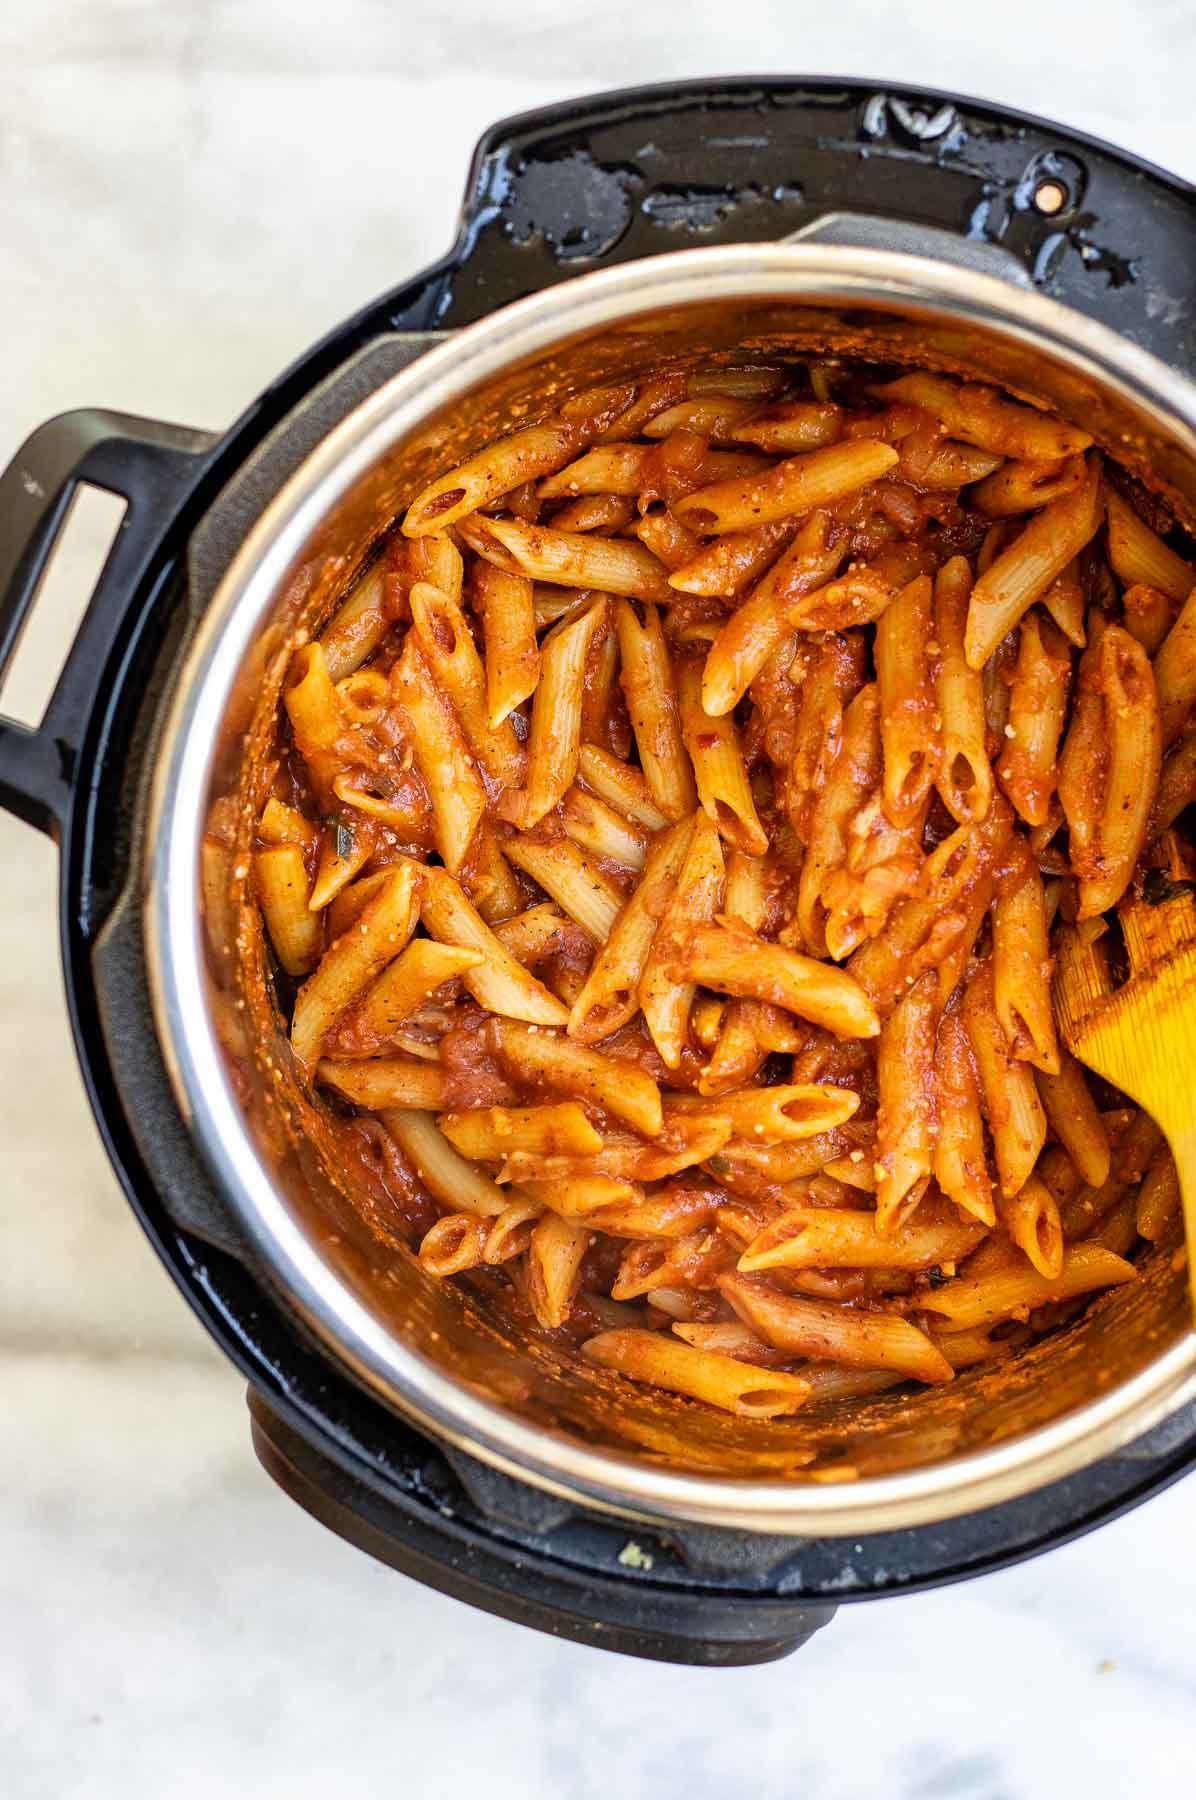 Instant pot pasta right after finishing cooking.